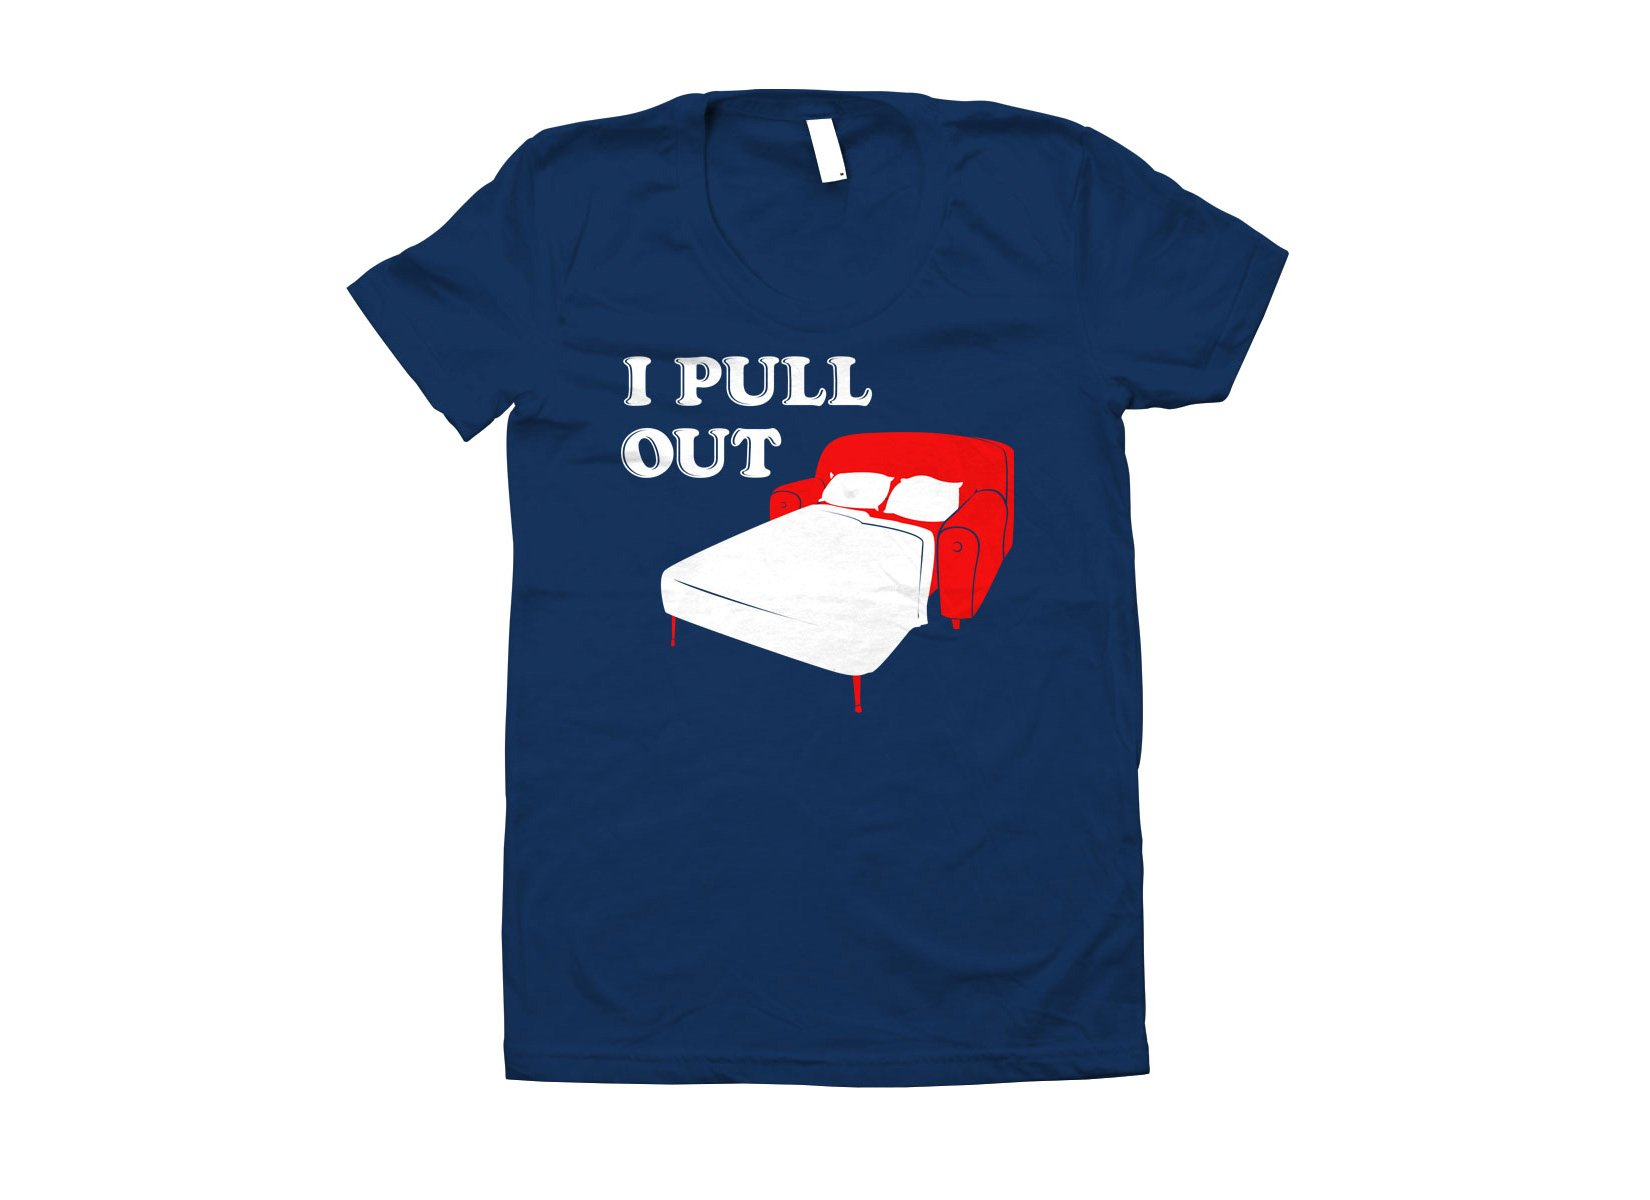 I Pull Out on Juniors T-Shirt